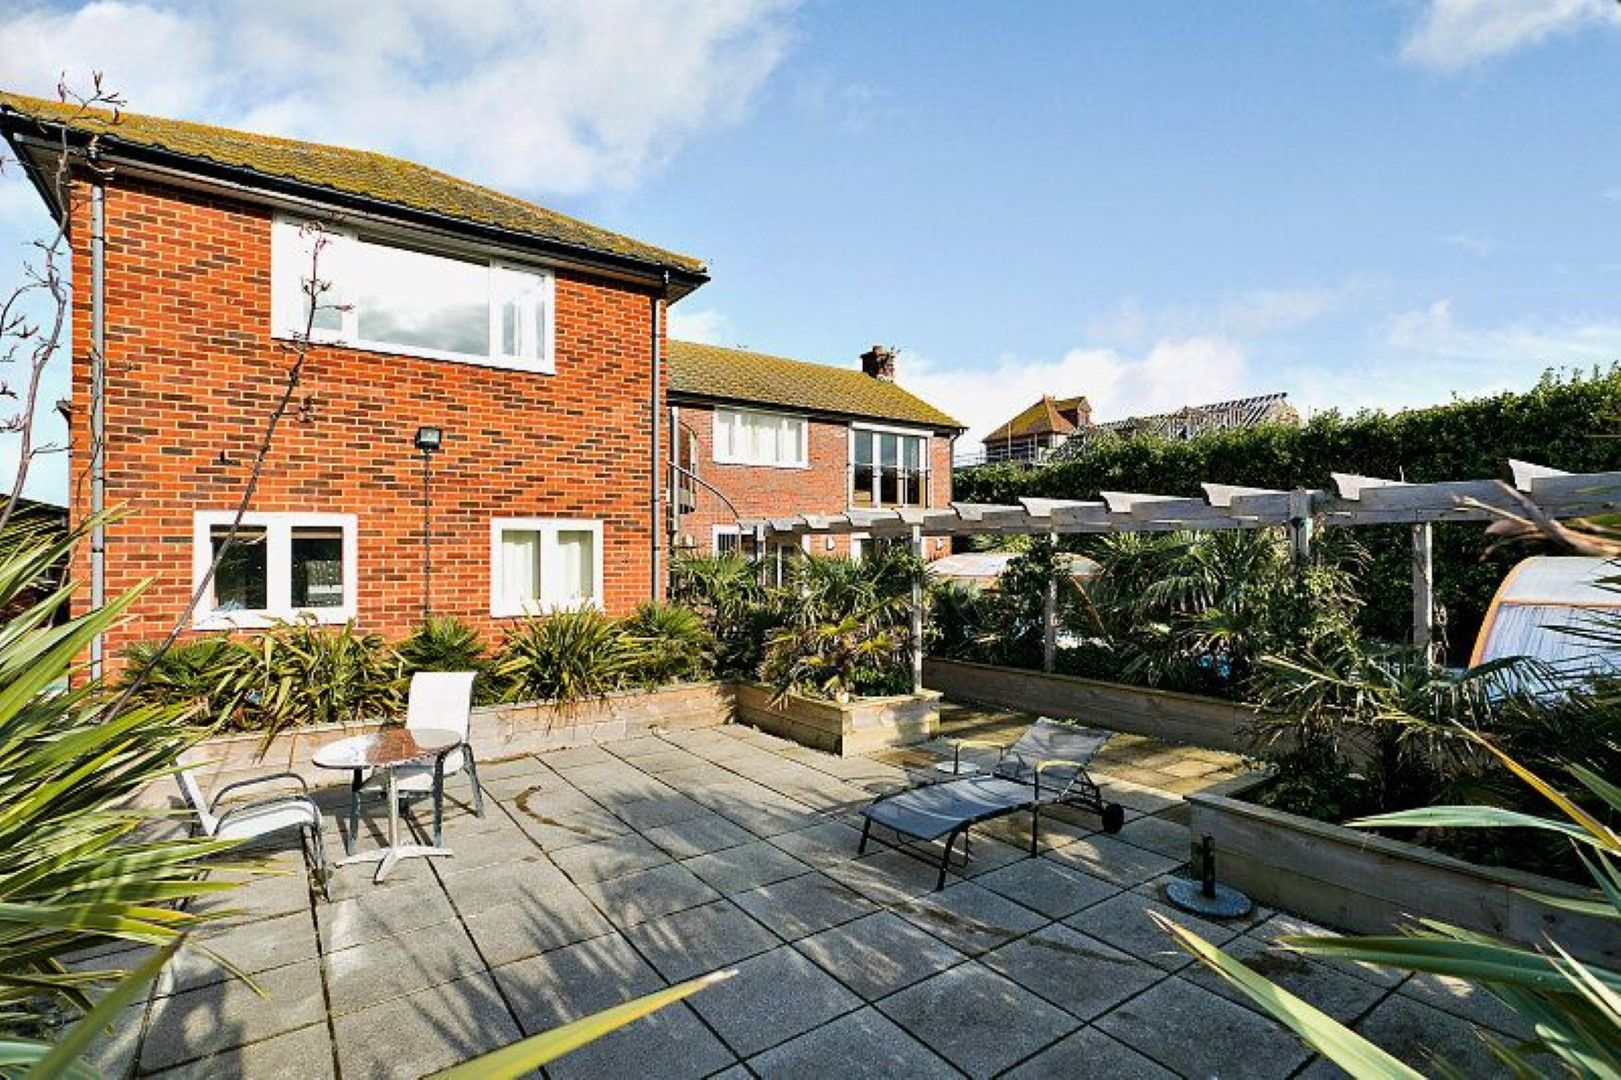 4 bedroom detached house For Sale in Broadstairs - Photograph 10